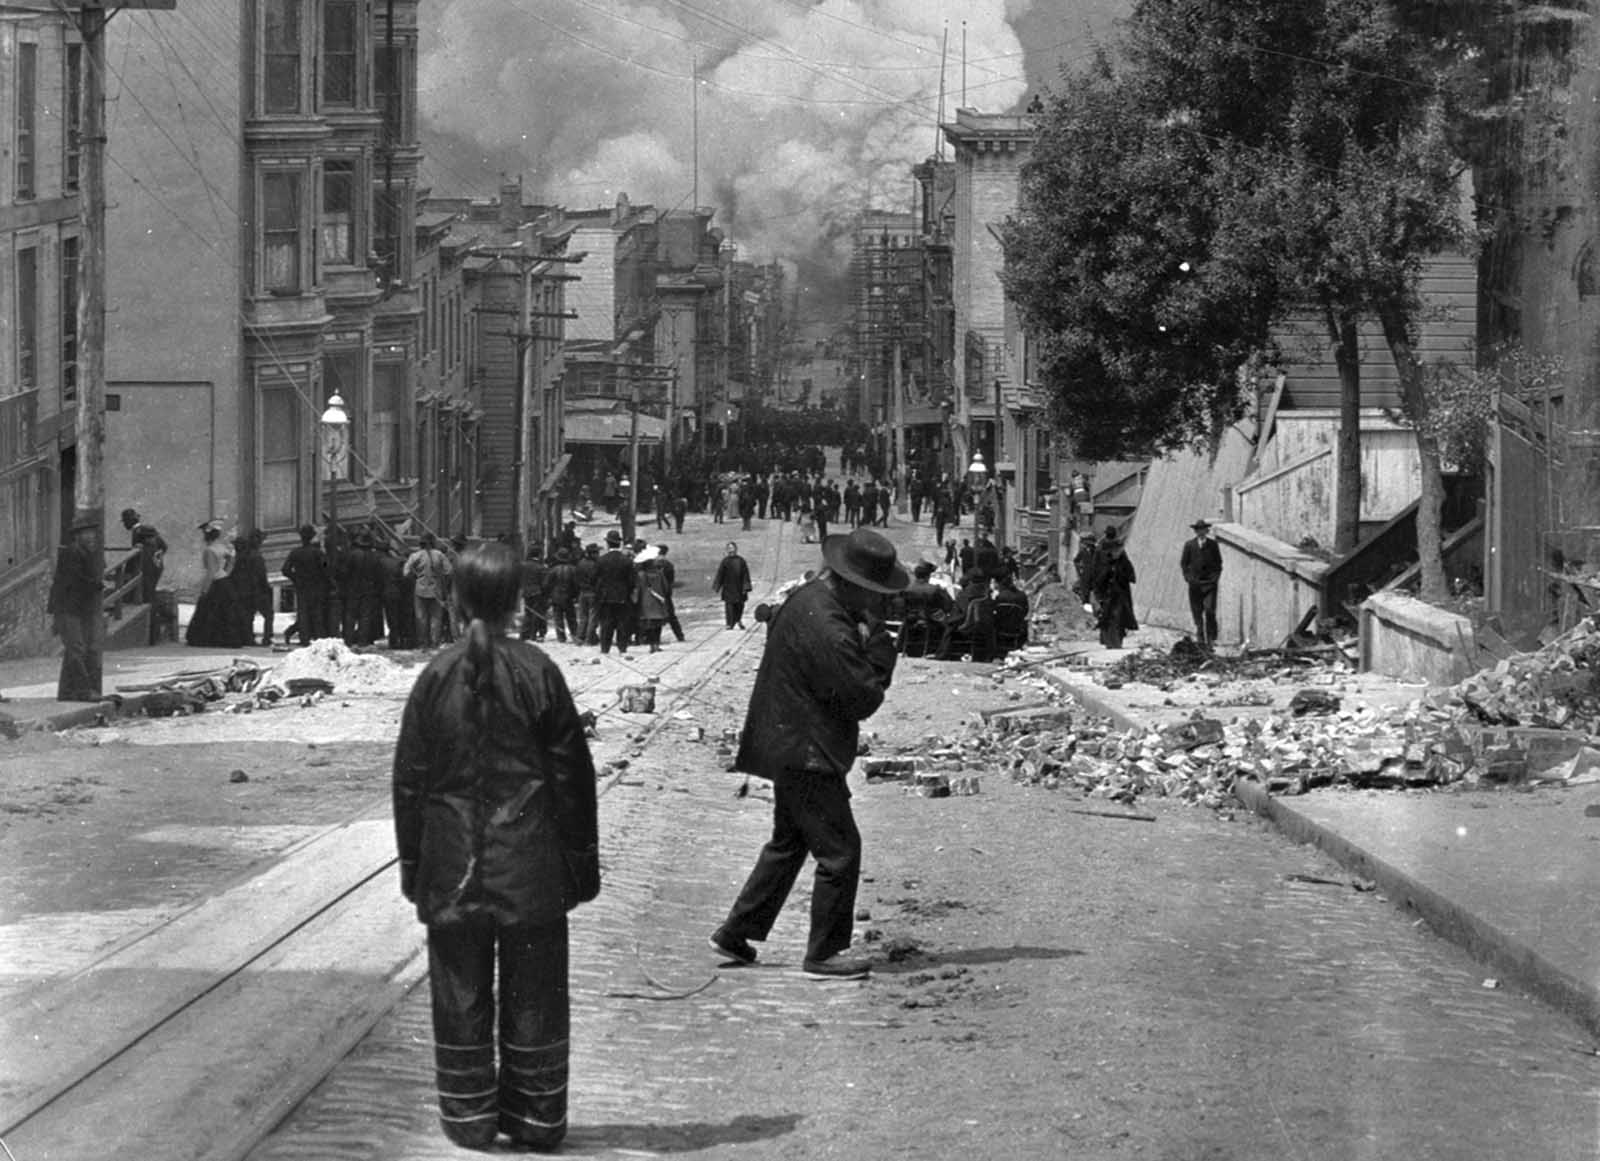 San Francisco residents stand in the rubble-strewn streets watching the fire grow after the earthquake struck on April 18, 1906.